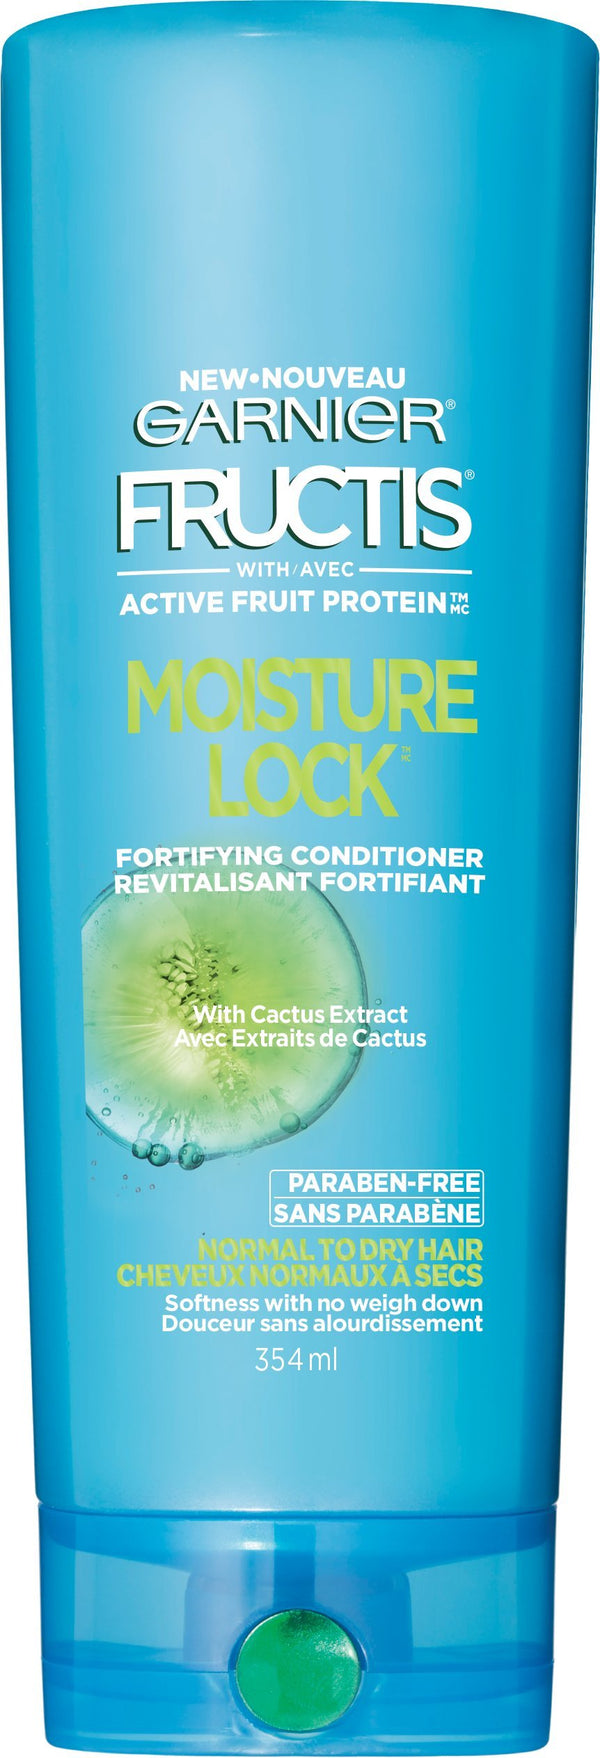 Garnier Hair Care Fructis Moisture Lock Conditioner, 12 Fluid Ounce